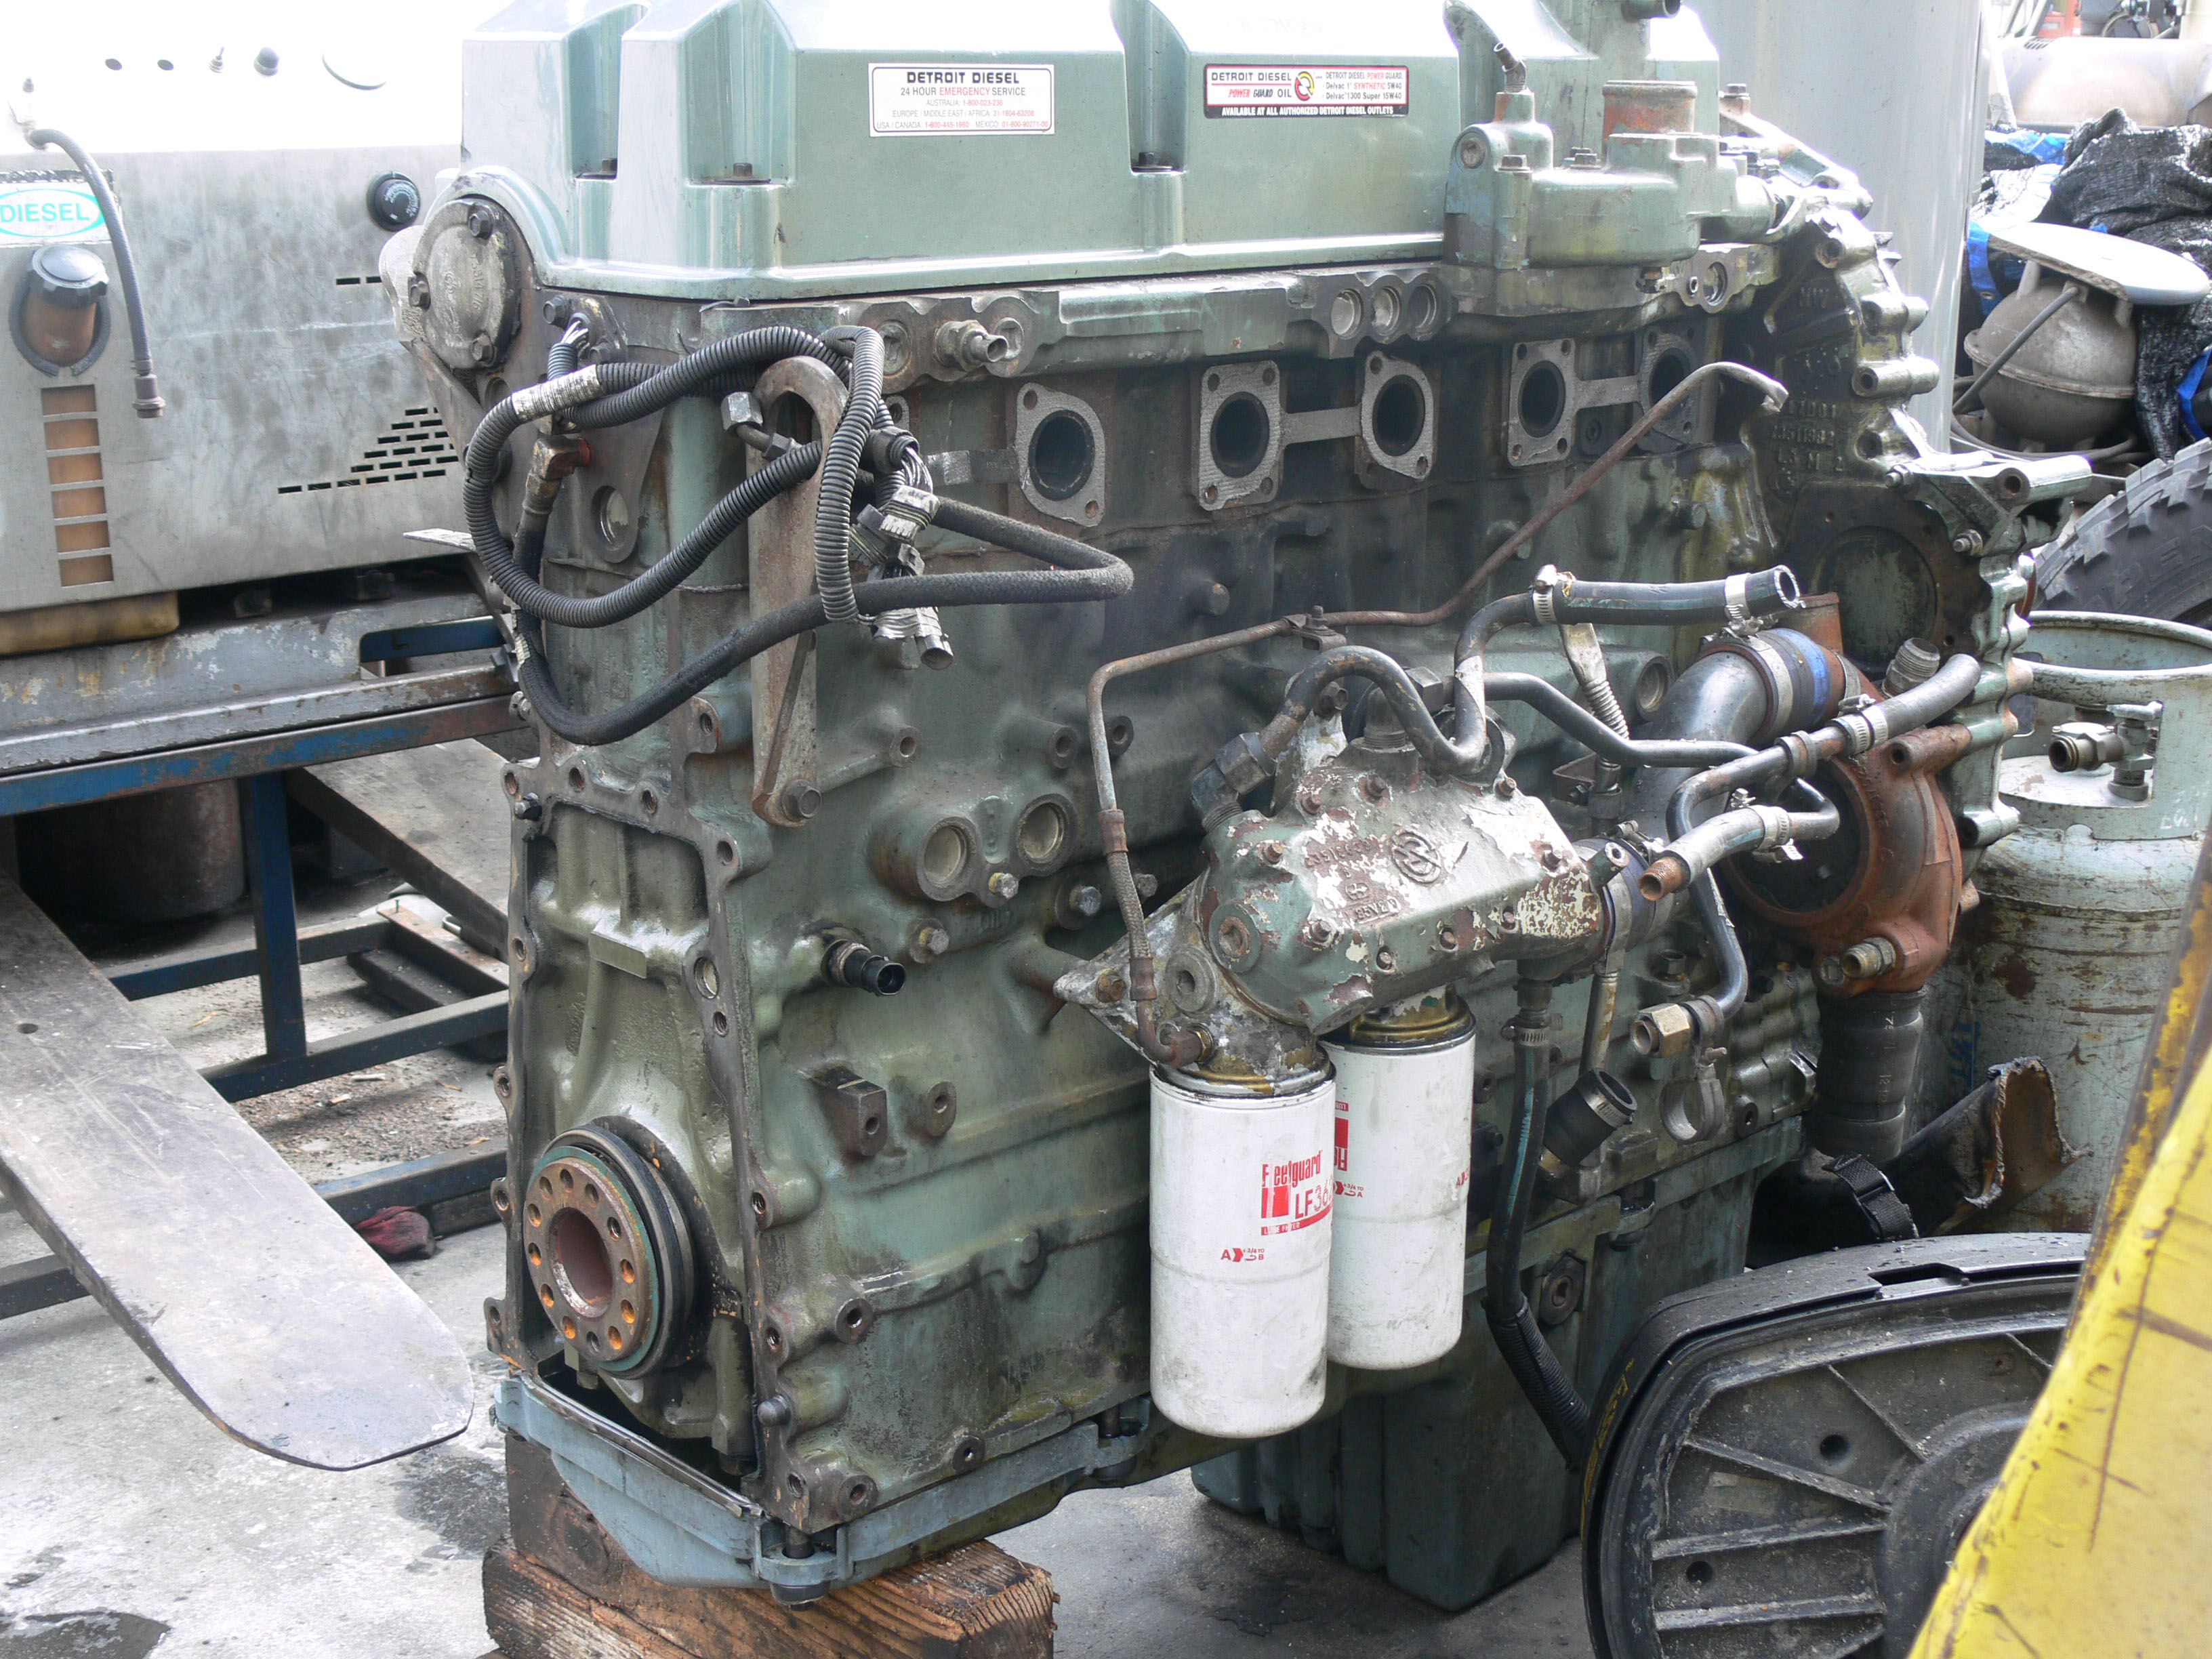 Detroit diesel series 60 engine images, detroit diesel series 60 engine photos, detroit diesel photos, detroit diesel